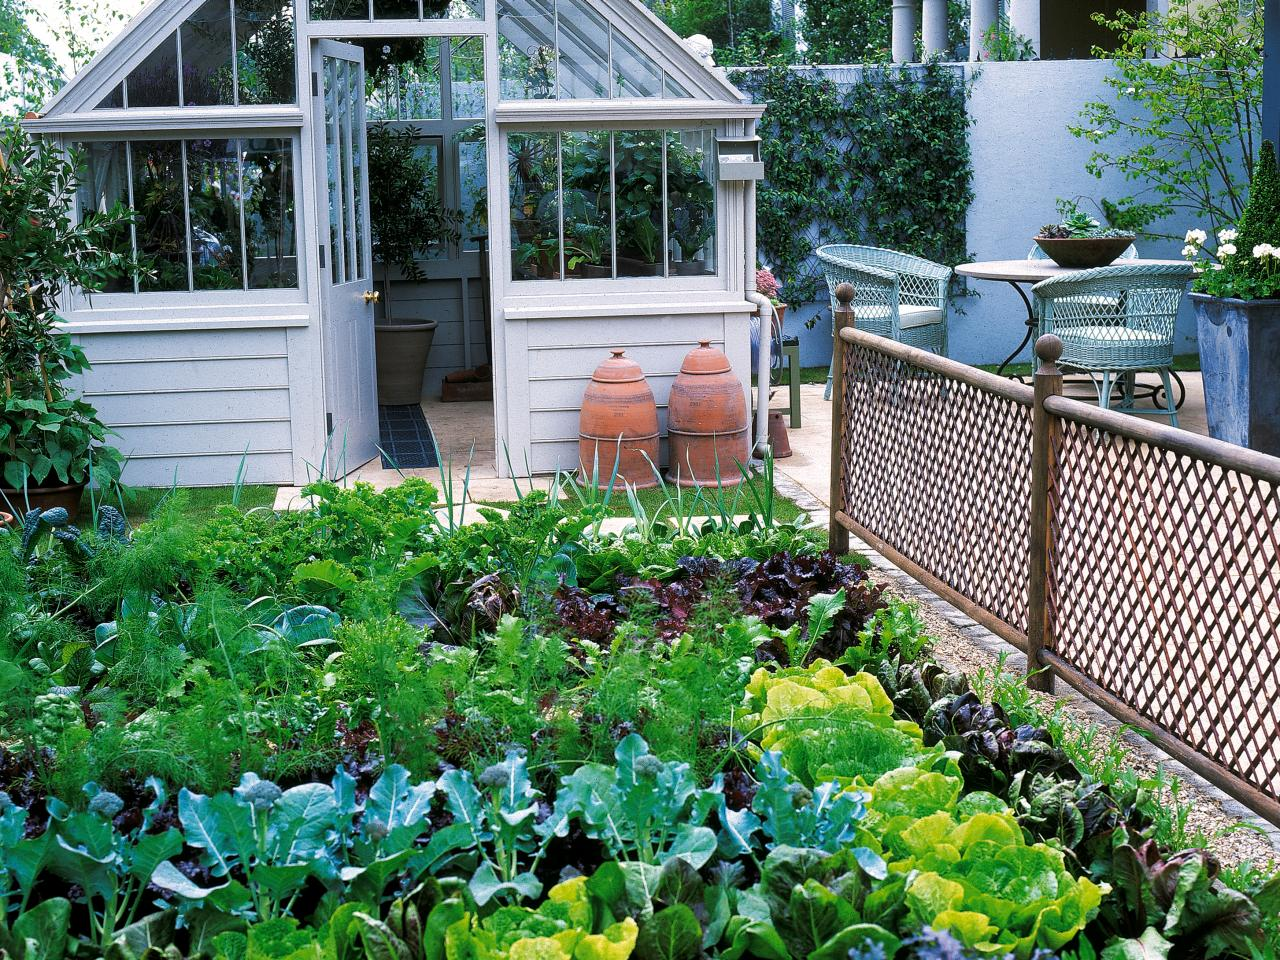 Growing Your Own vs Shopping - Growing Spaces